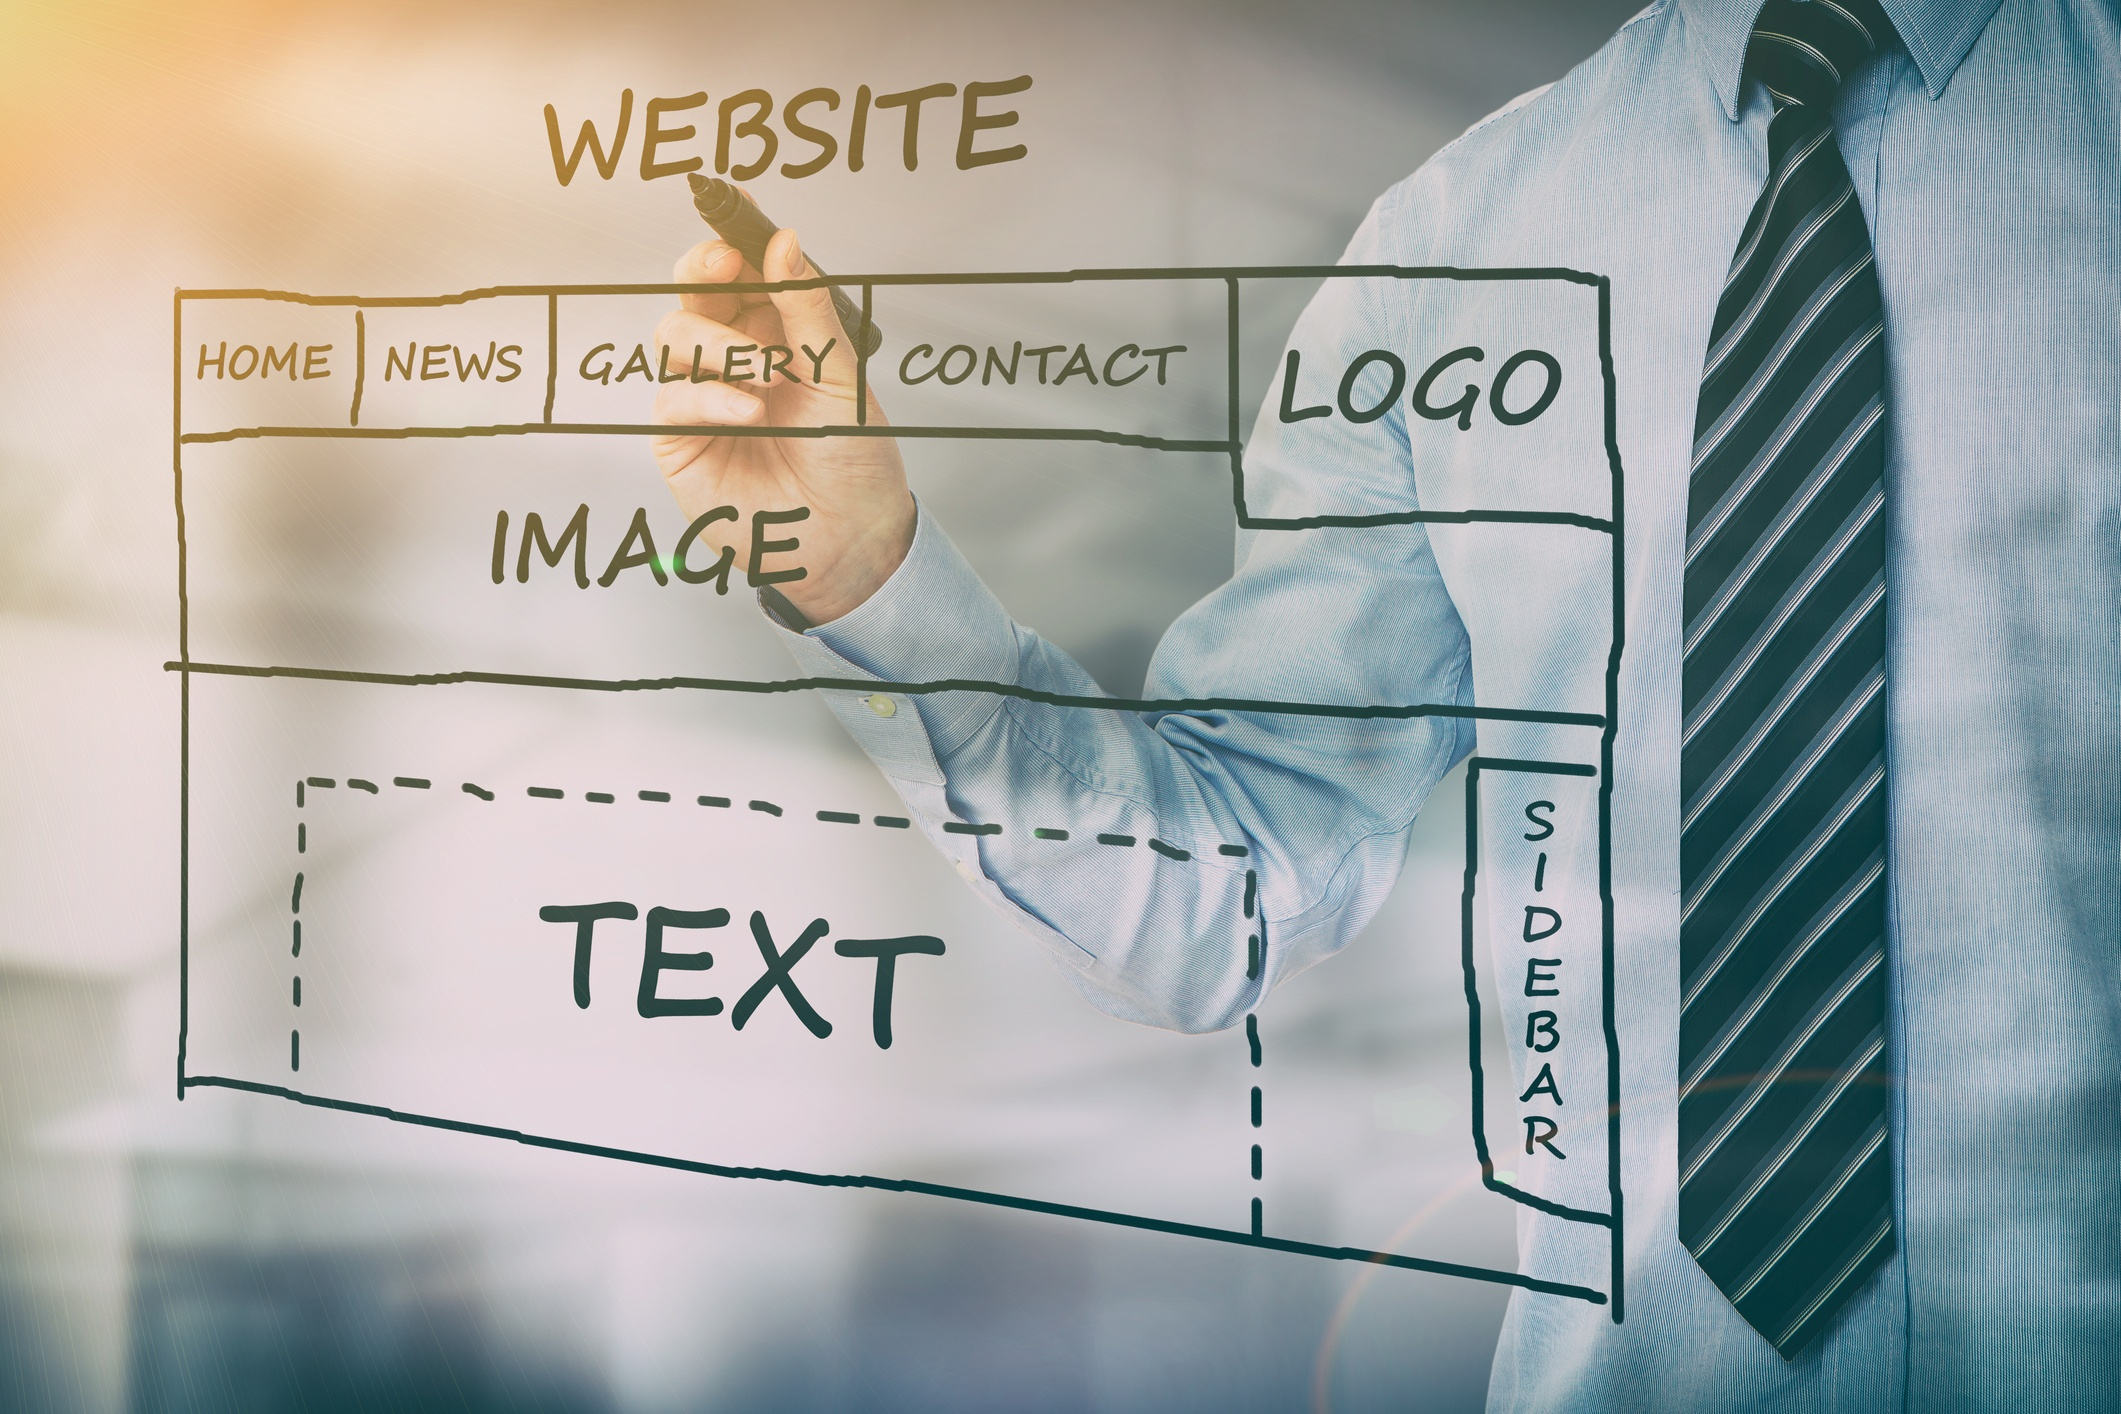 website-designers-4-steps-to-planning-a-website-from-start-to-finish.jpg